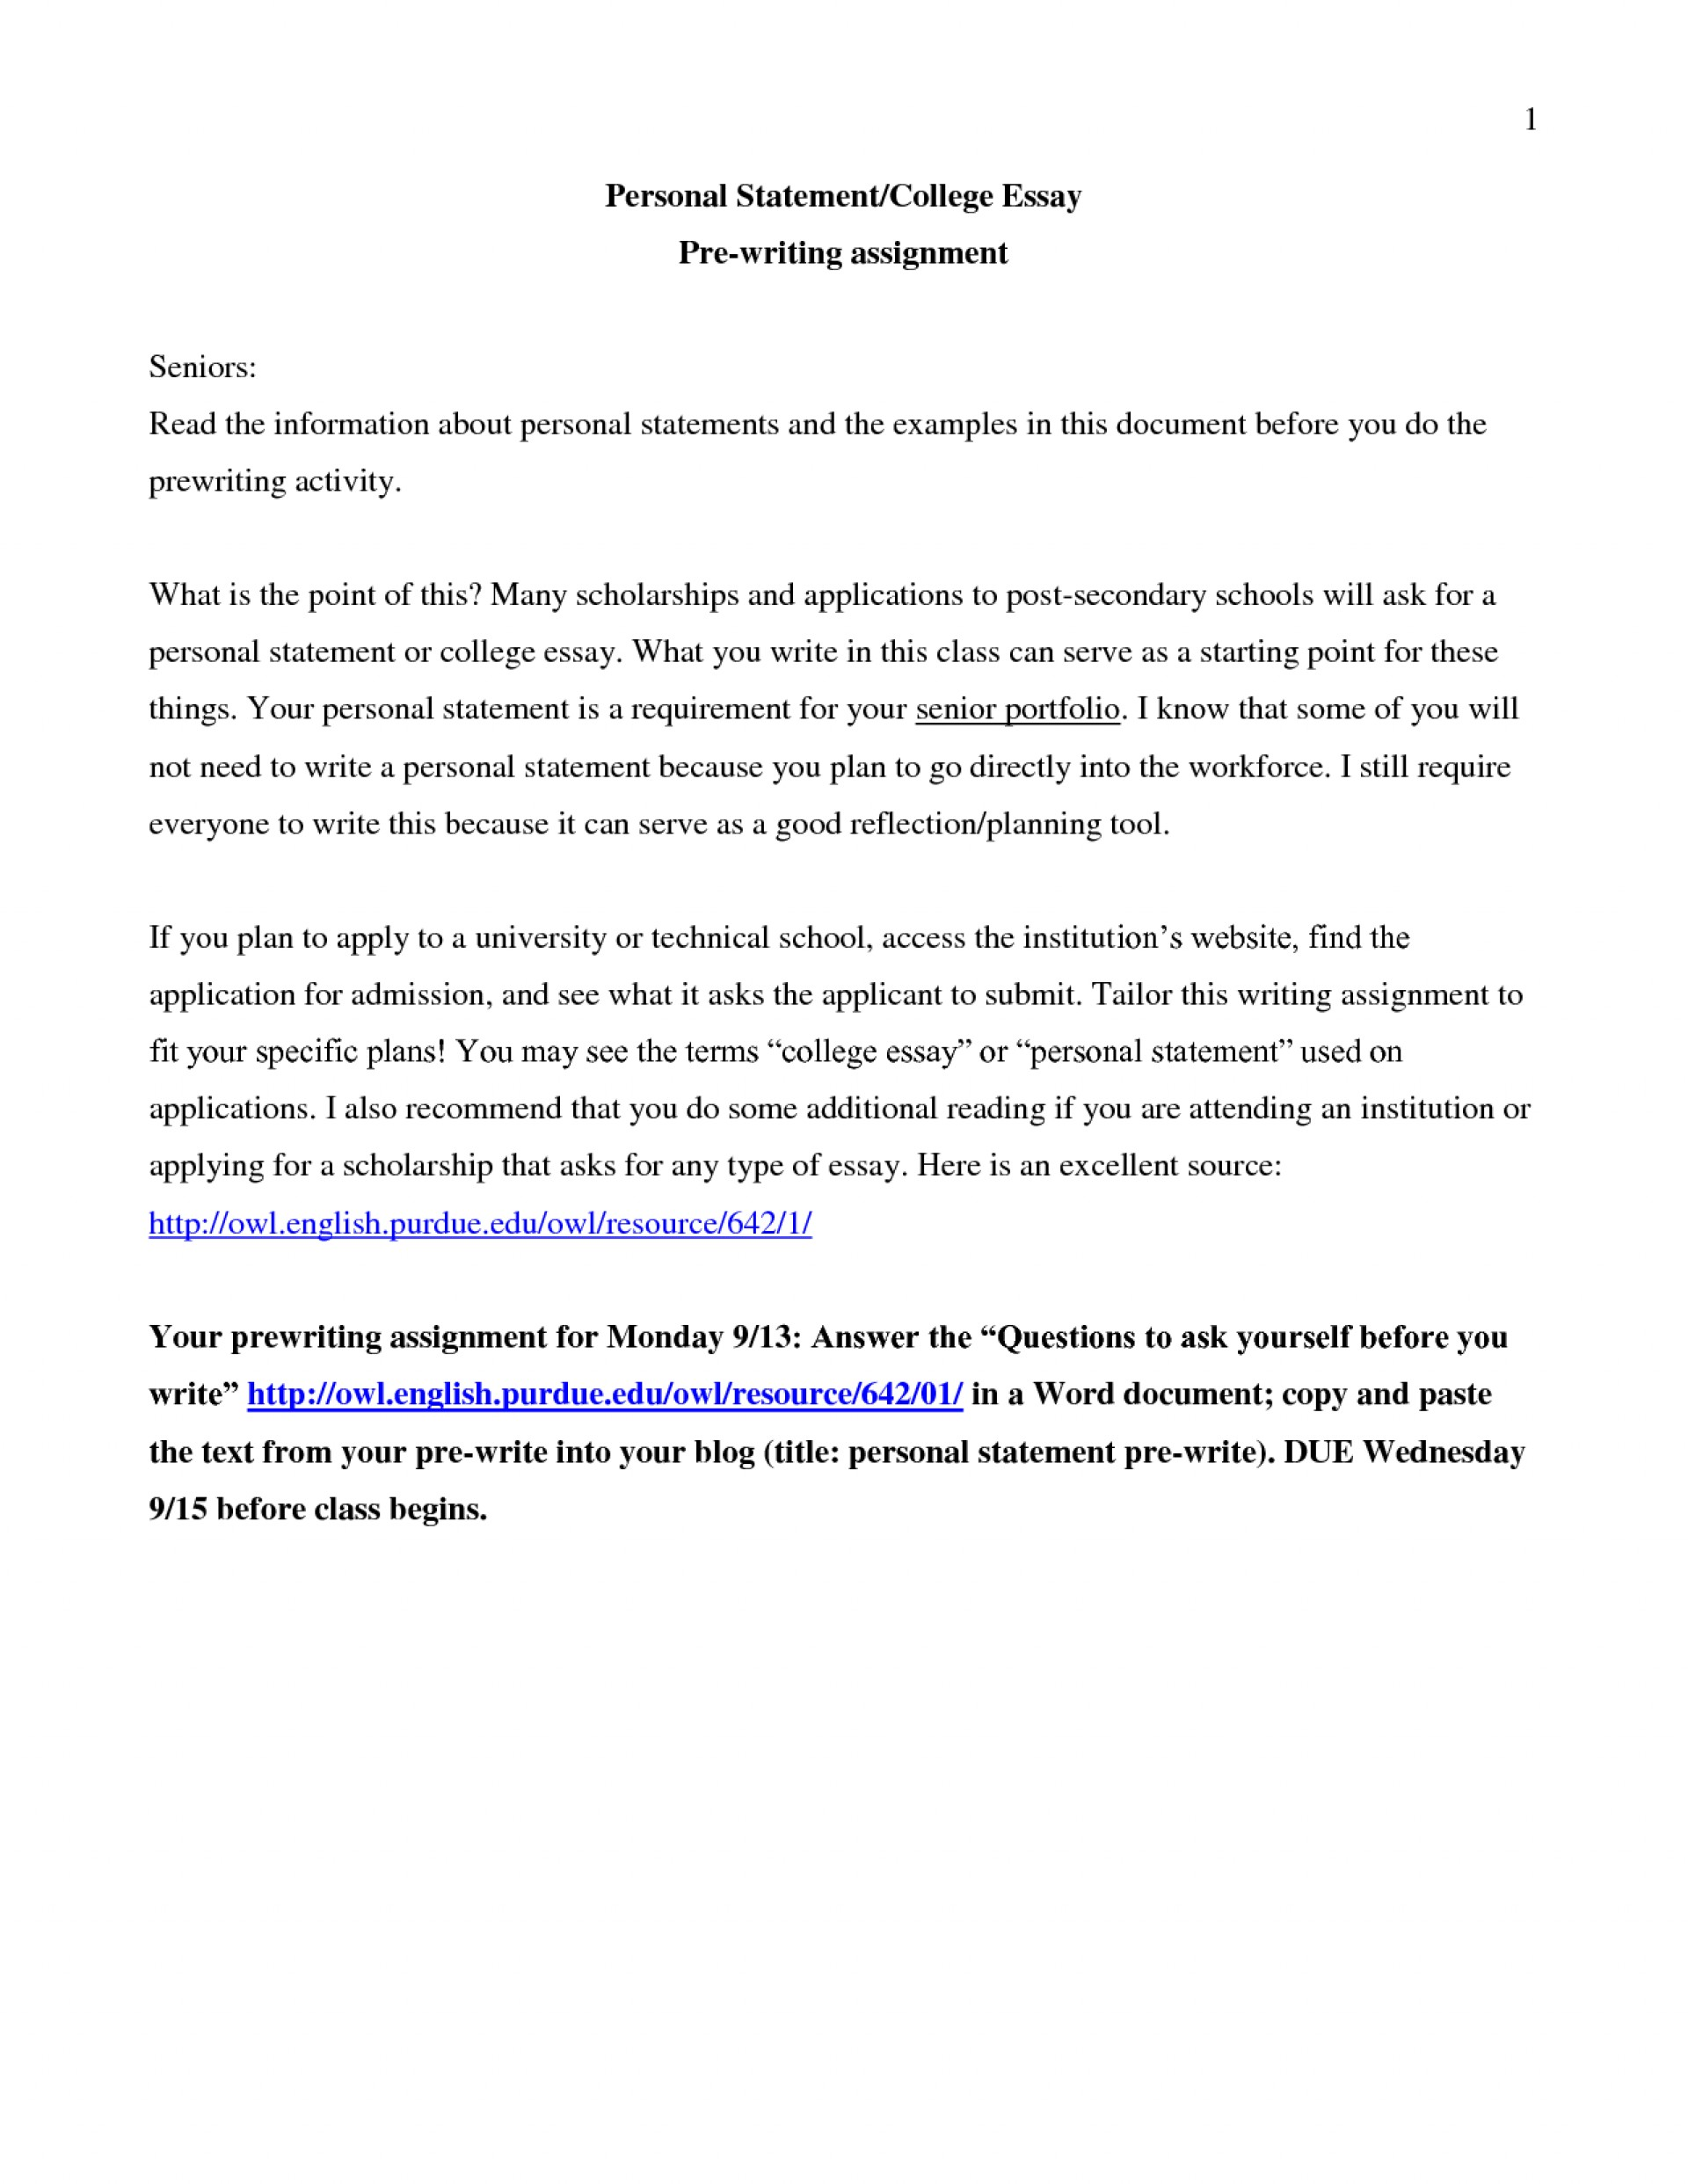 003 Uf Essay Prompts Prompt Practice Co Our Tips On Writing Your Applications Ahigk Unforgettable Honors Application Questions 1920